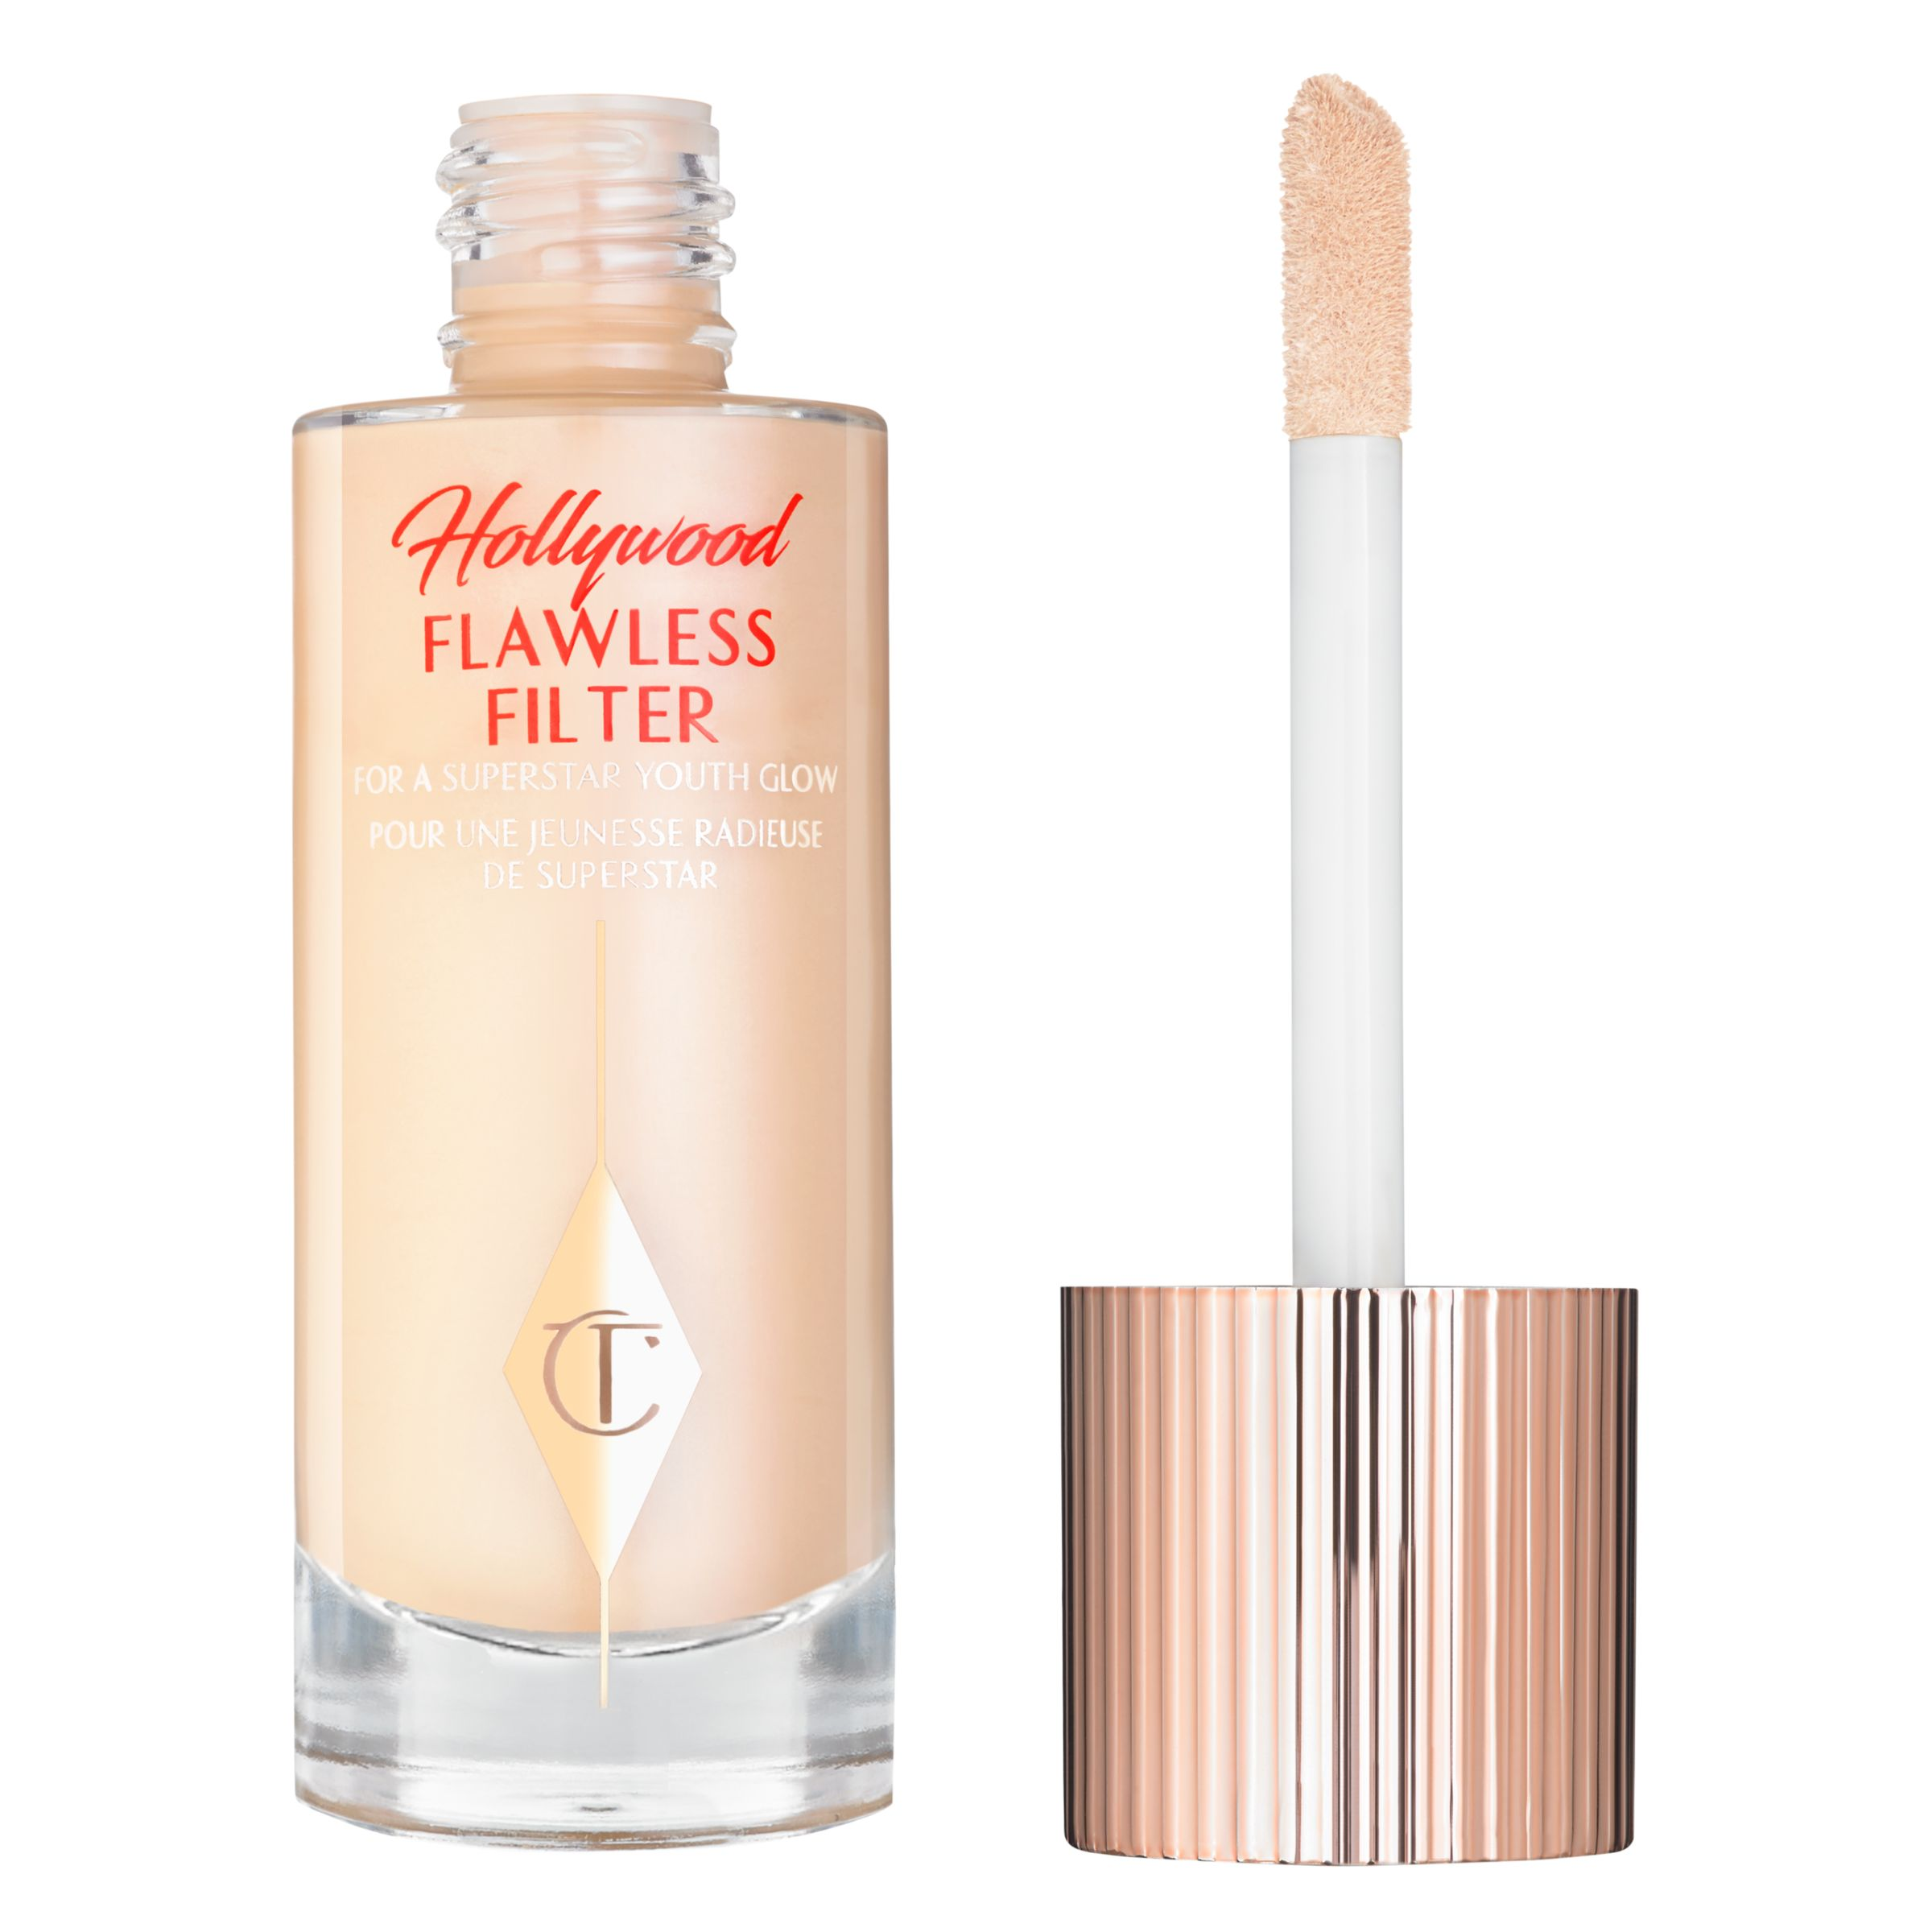 Buy Charlotte Tilbury Hollywood Flawless Filter, 1 Fair Online at johnlewis.com